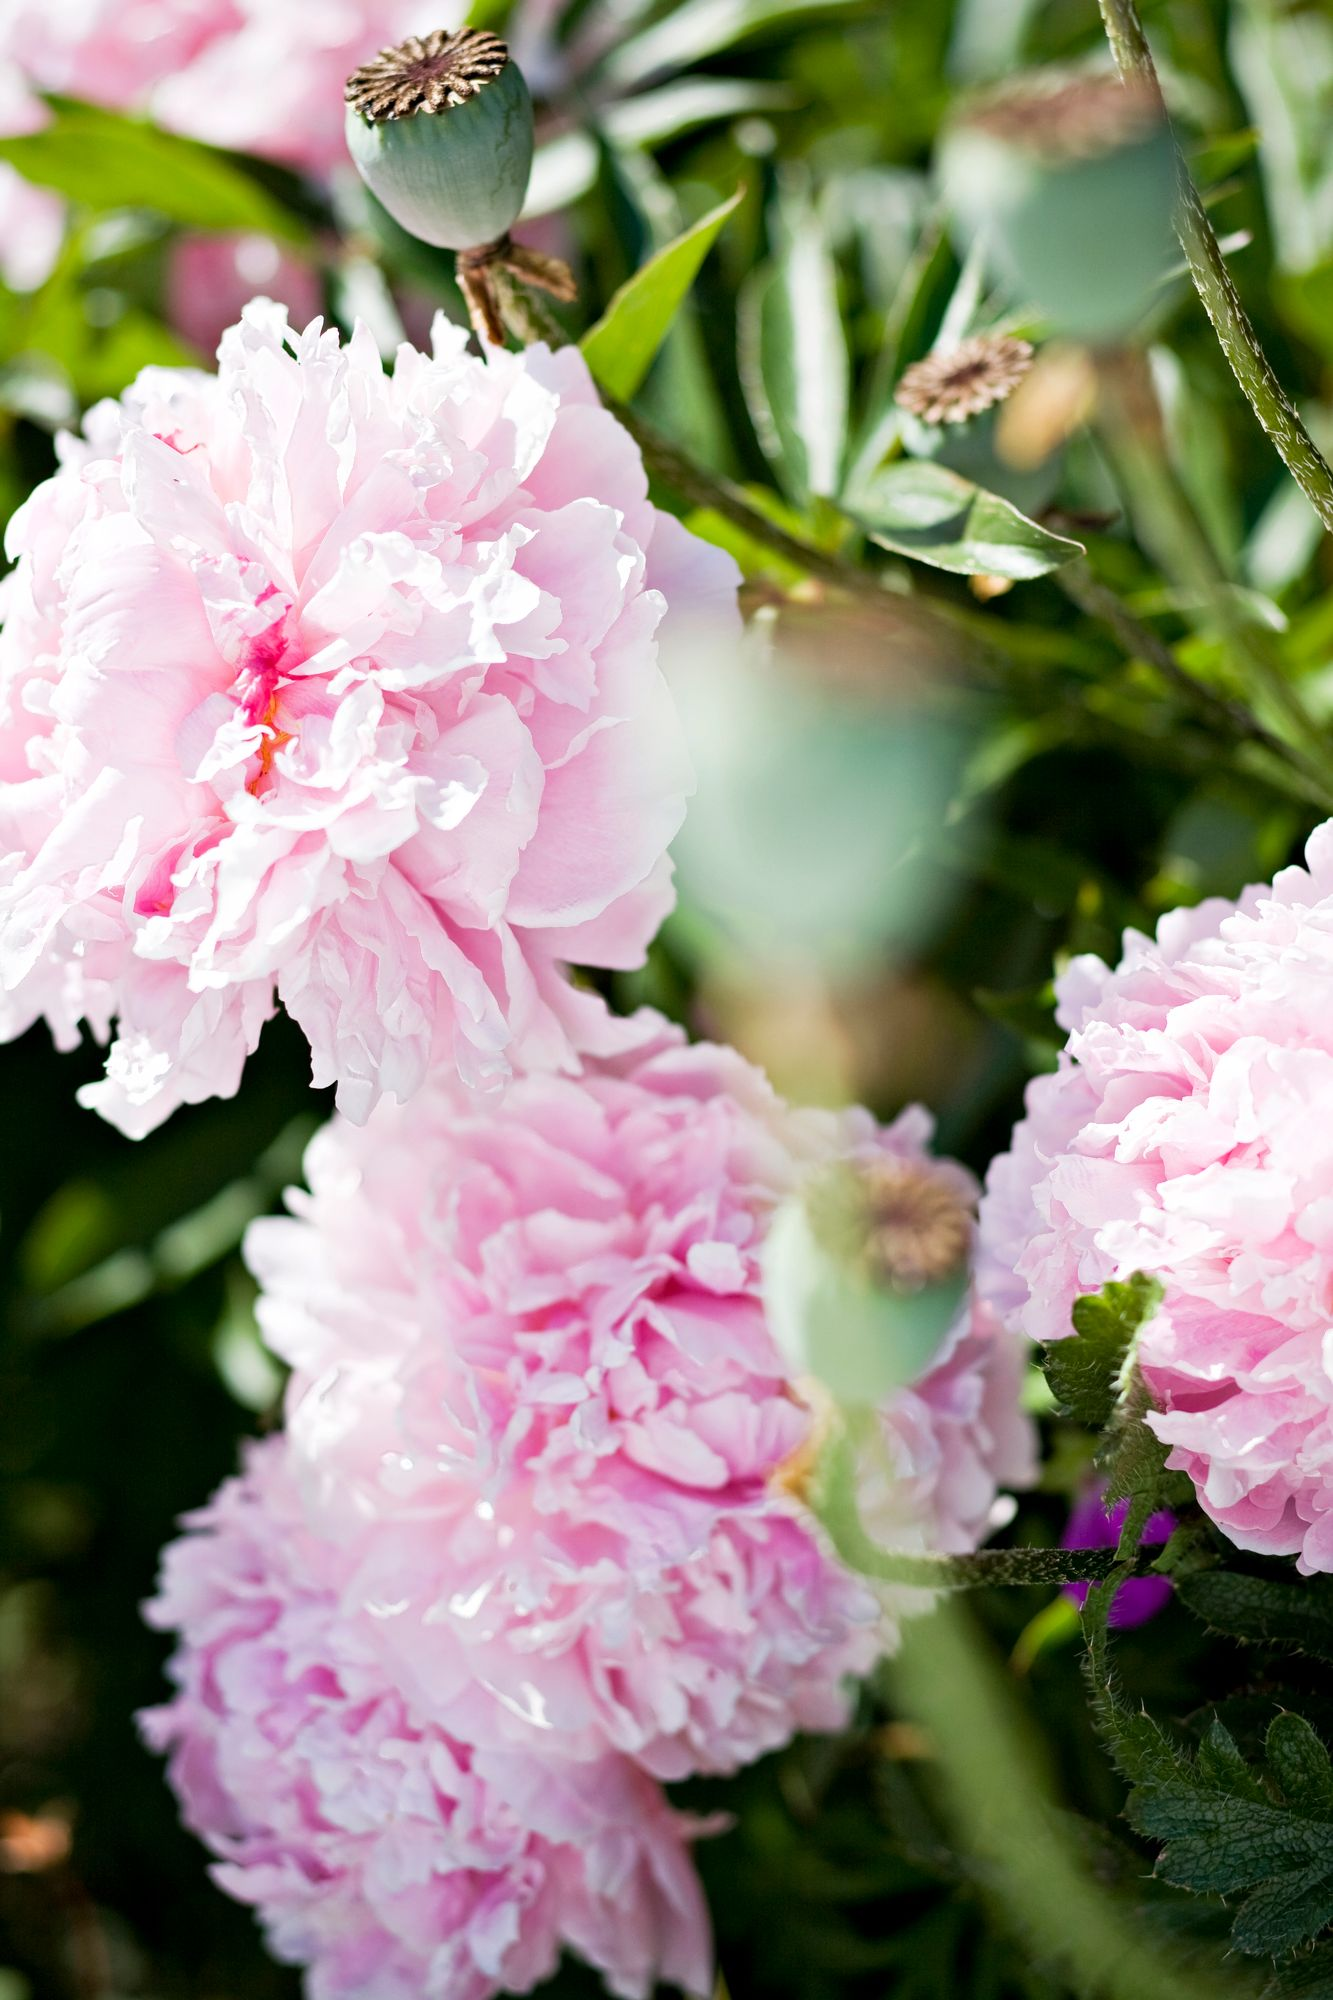 The peony is one of the most spectacular perennials.  The easy-care cottage yard makes it a real queen of color.